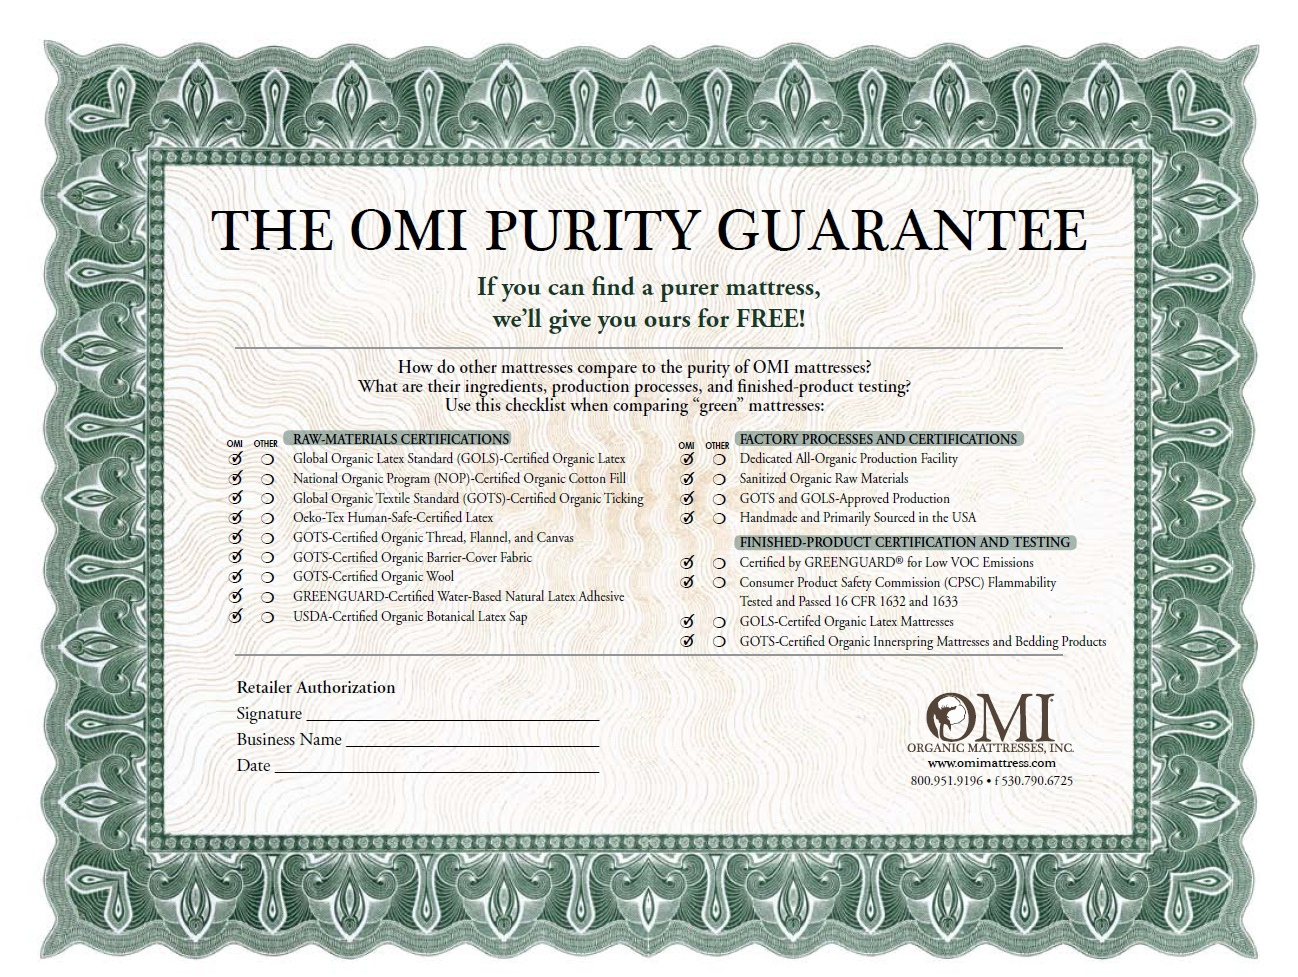 OMI Purity Guarantee